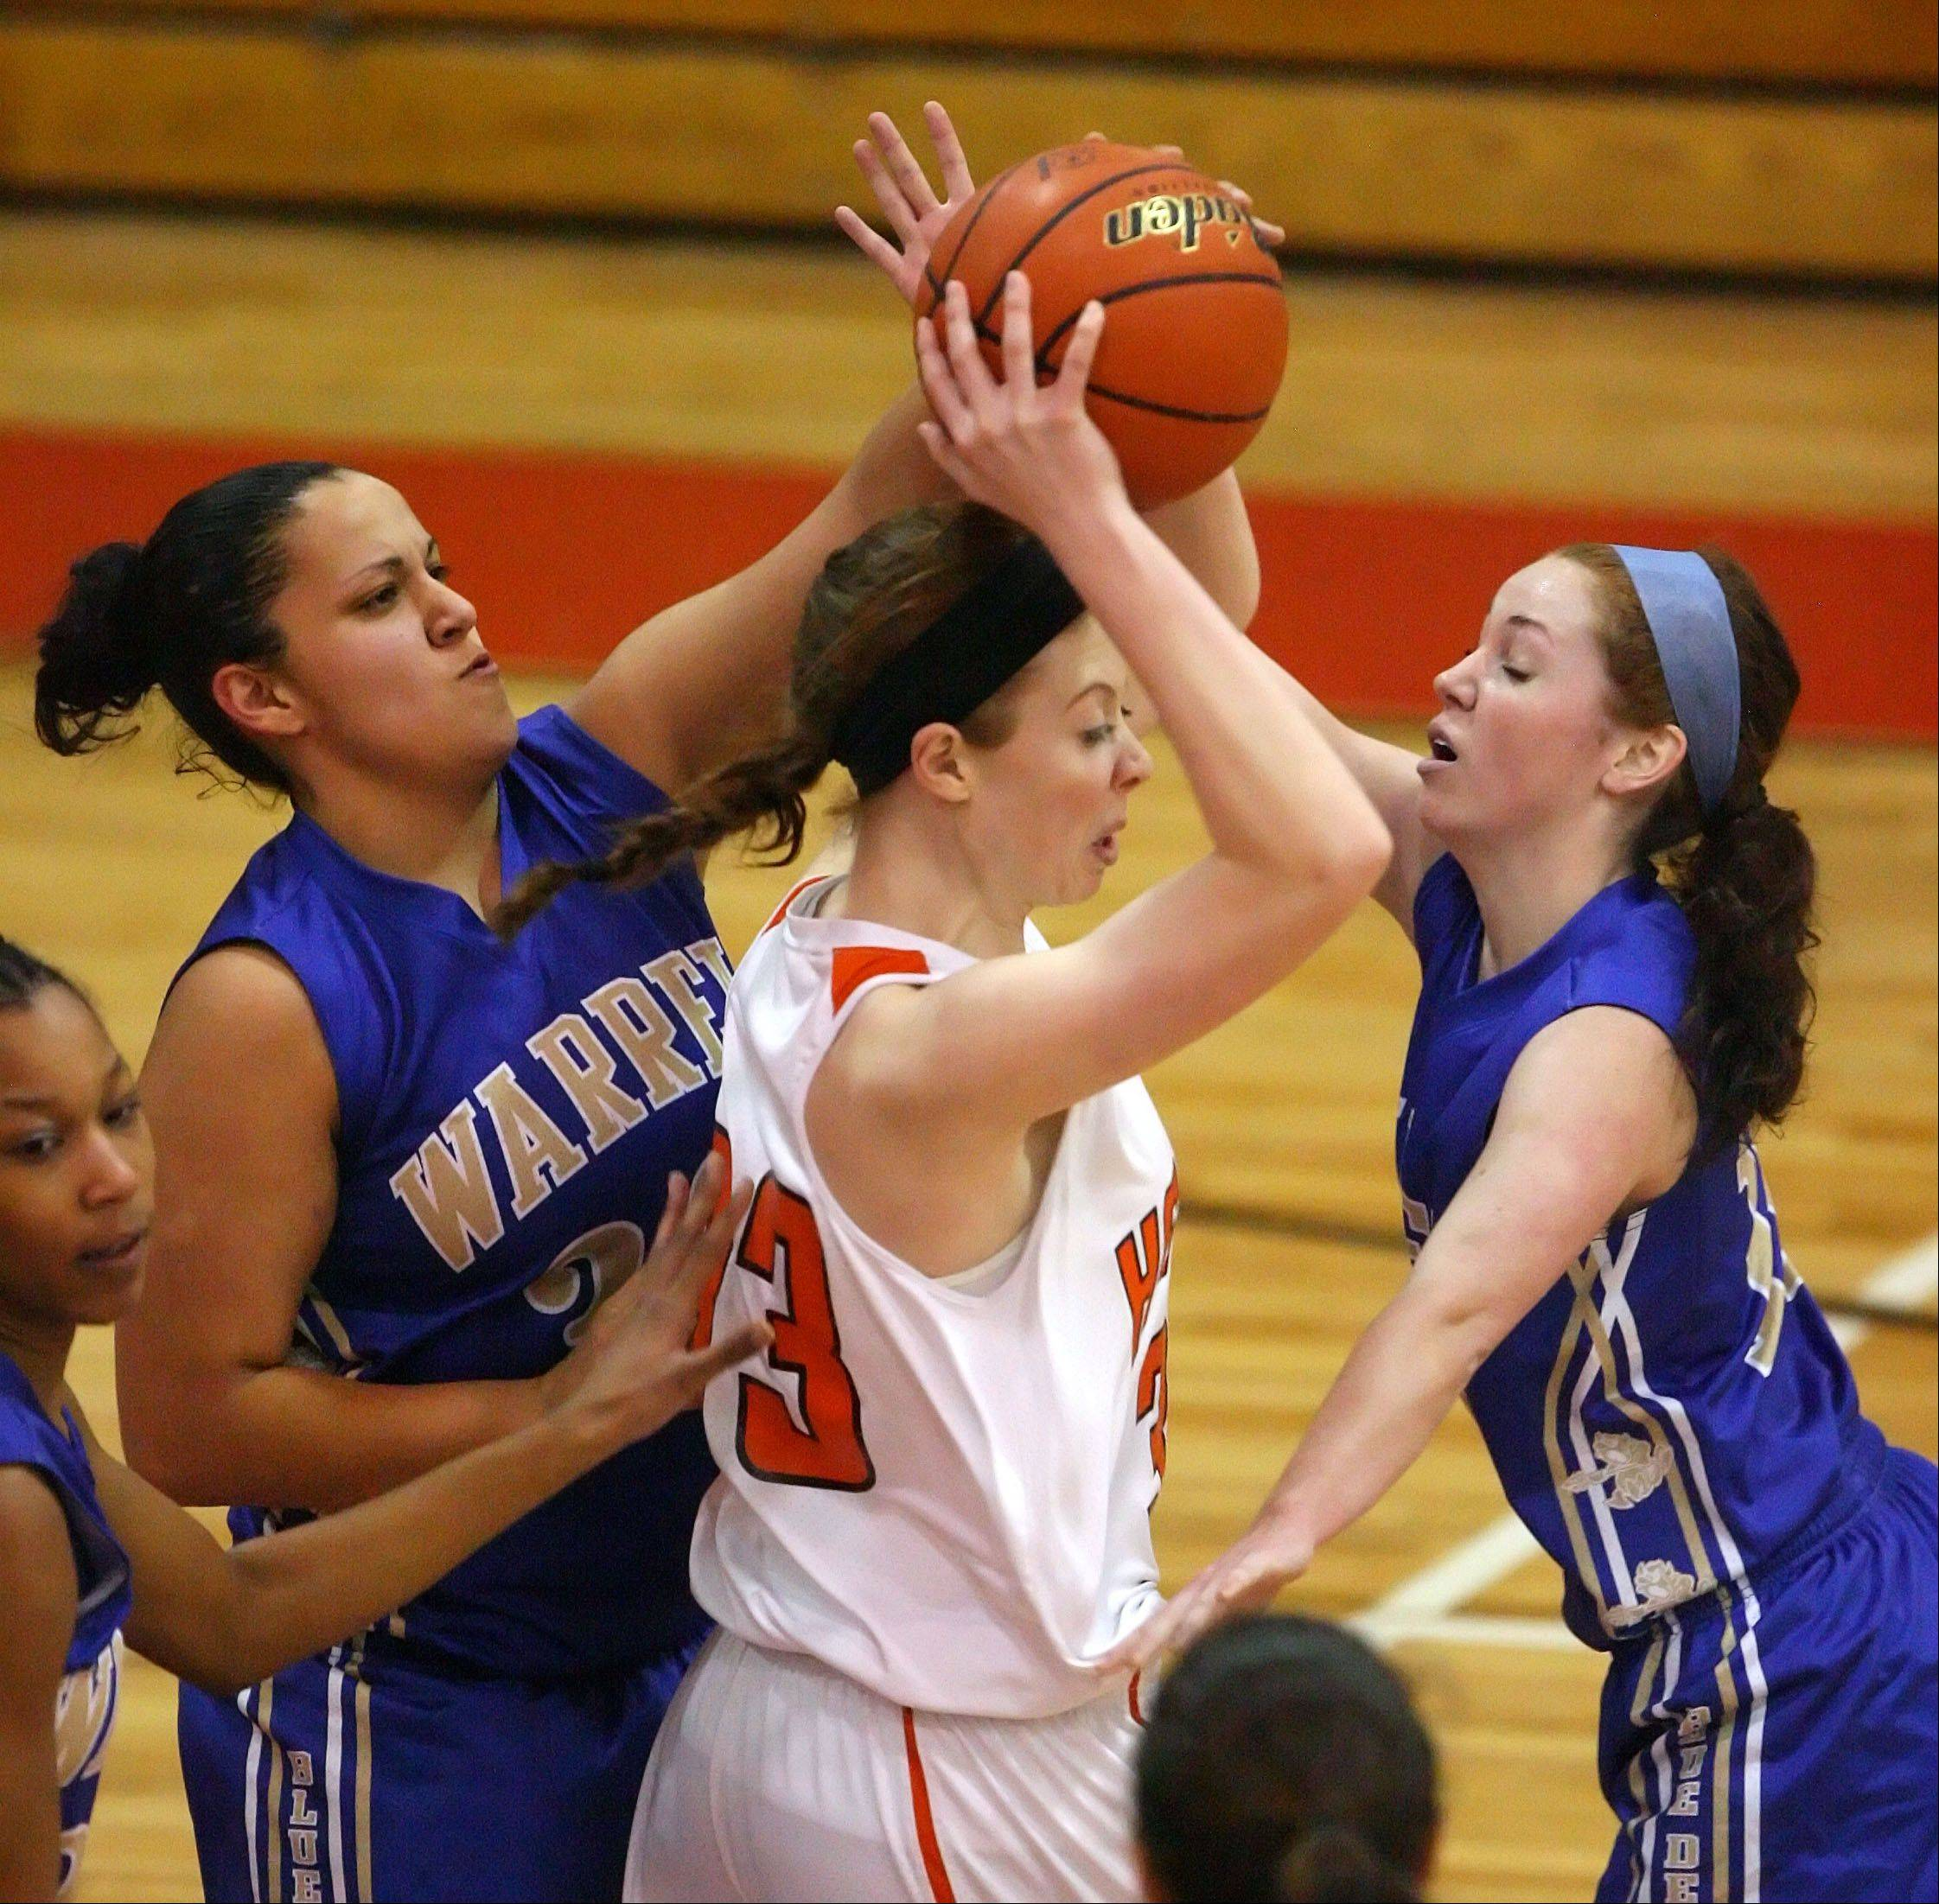 Images: Hersey vs. Warren, girls basketball